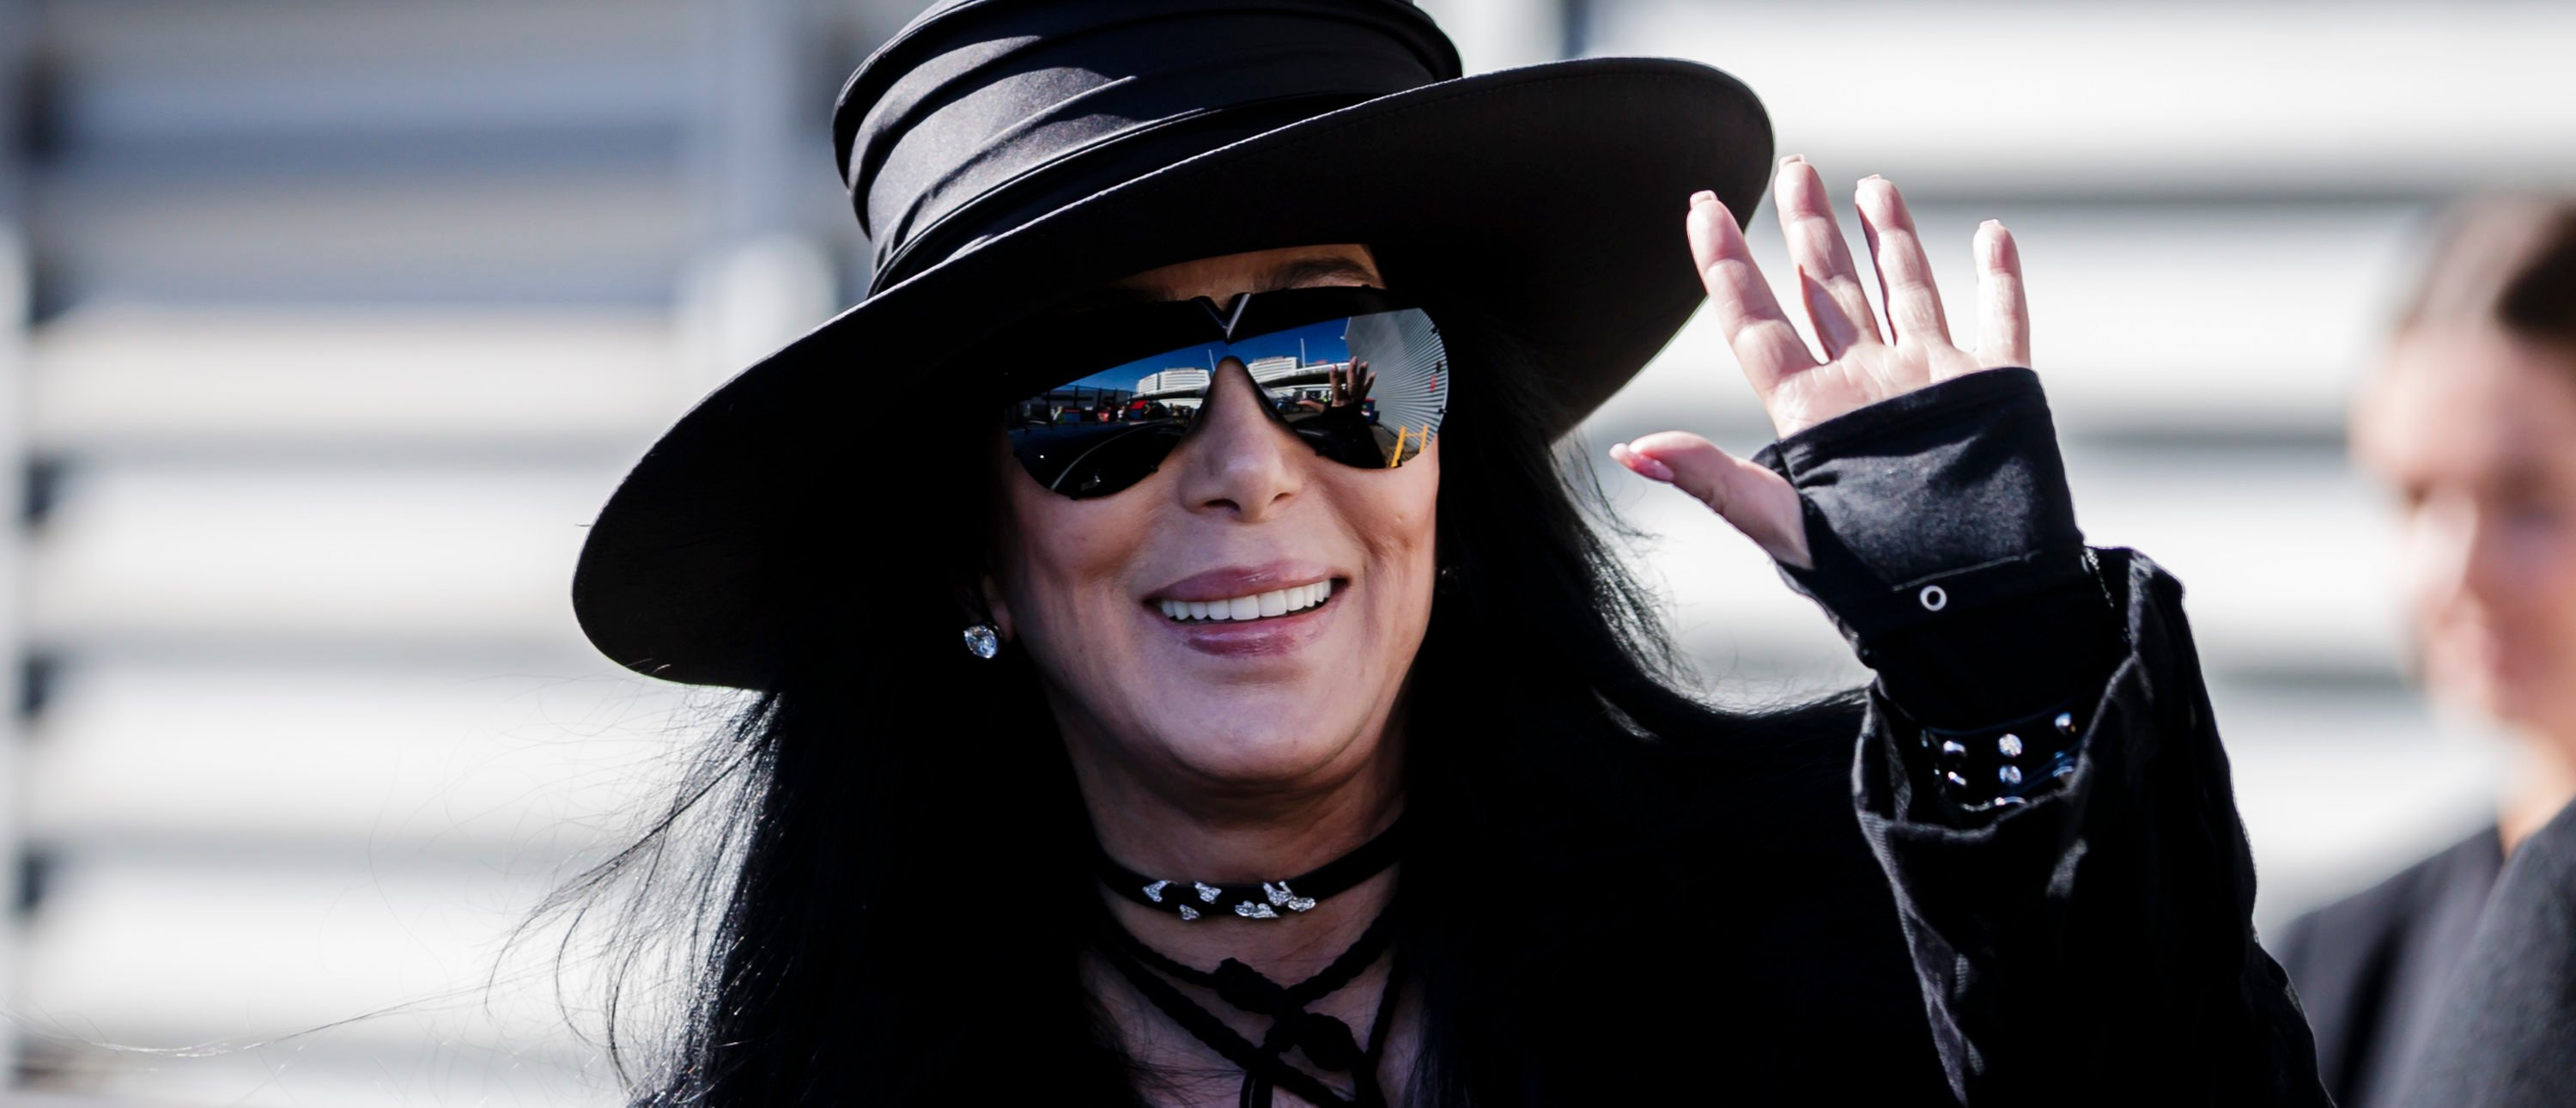 SYDNEY, AUSTRALIA - FEBRUARY 28: American singer and actress Cher arrives at the Sydney International Airport on February 28, 2018 in Sydney, Australia. Cher is in Australia to headline the 40th anniversary of the Sydney Gay and Lesbian Mardi Gras party. (Photo by Brook Mitchell/Getty Images